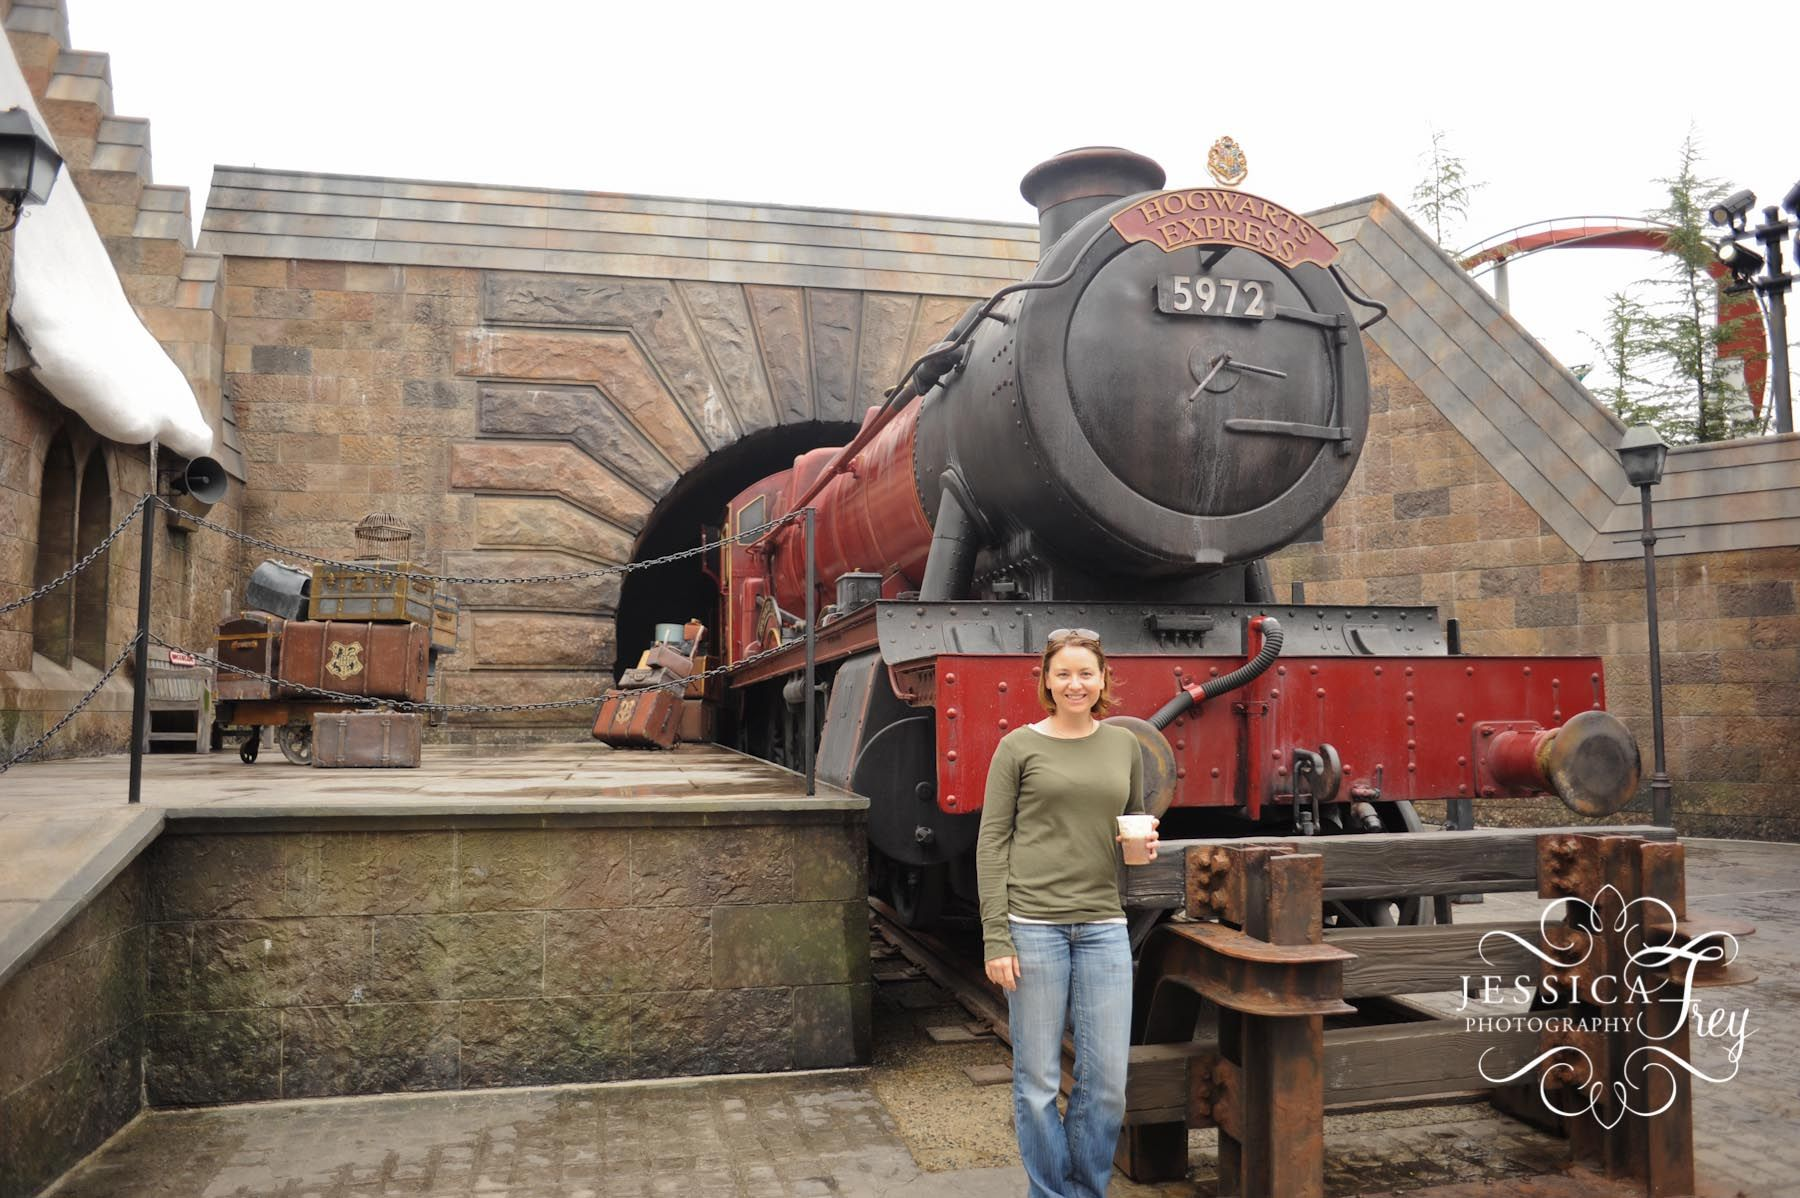 The Hogwarts express about to leave the station at The Wizarding World of Harry Potter. Photograph by Jessica Frey.